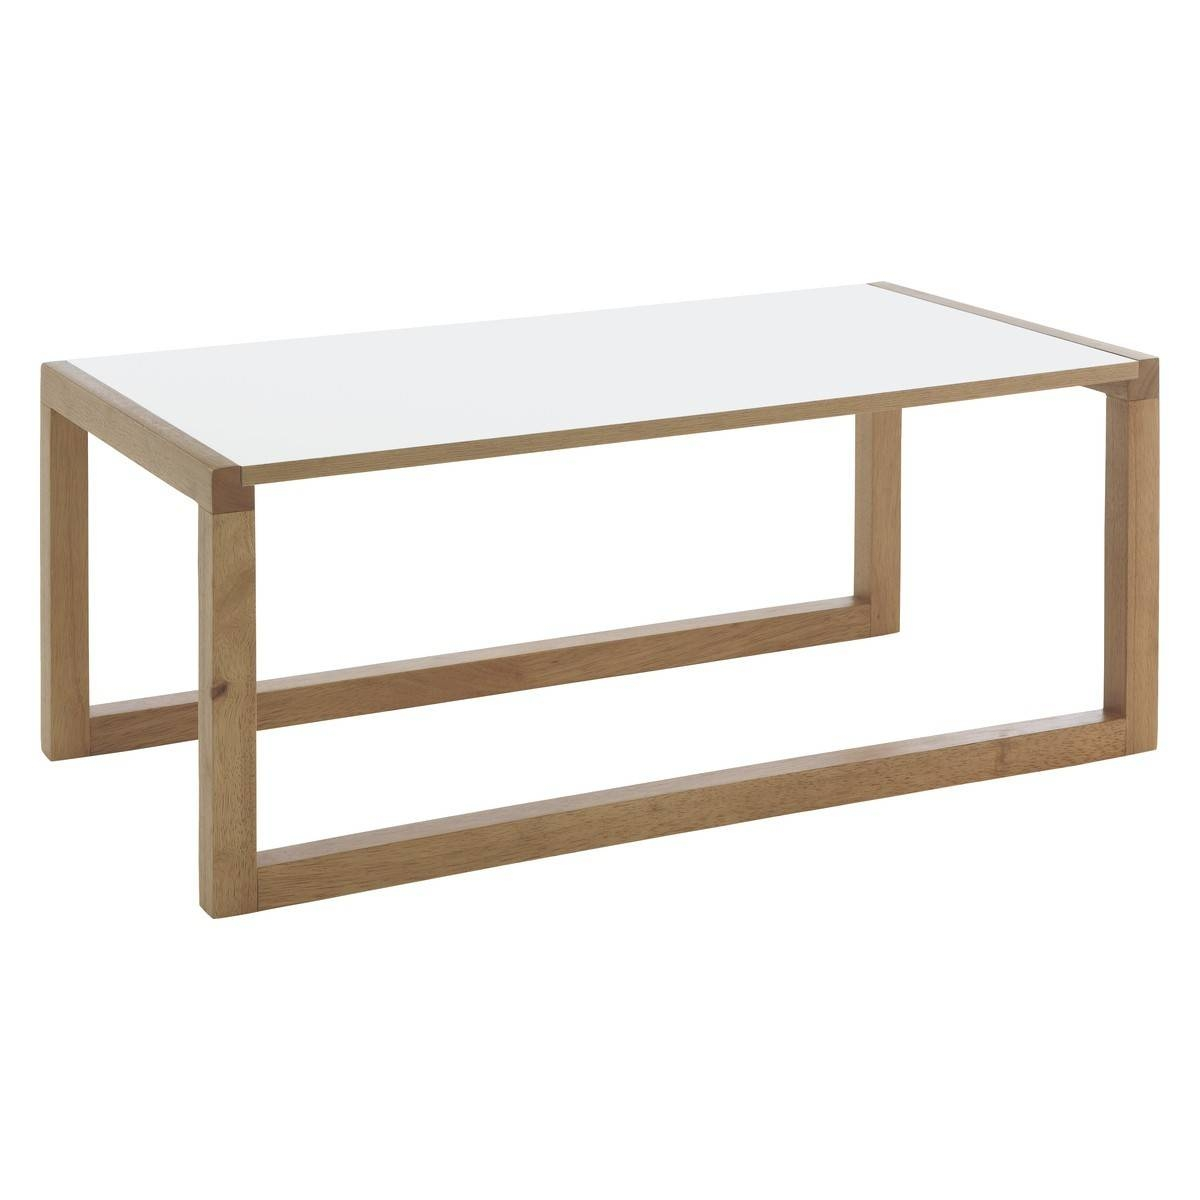 15 best collection of long coffee tables kenstal white long coffee table buy now at habitat uk in long coffee tables geotapseo Choice Image